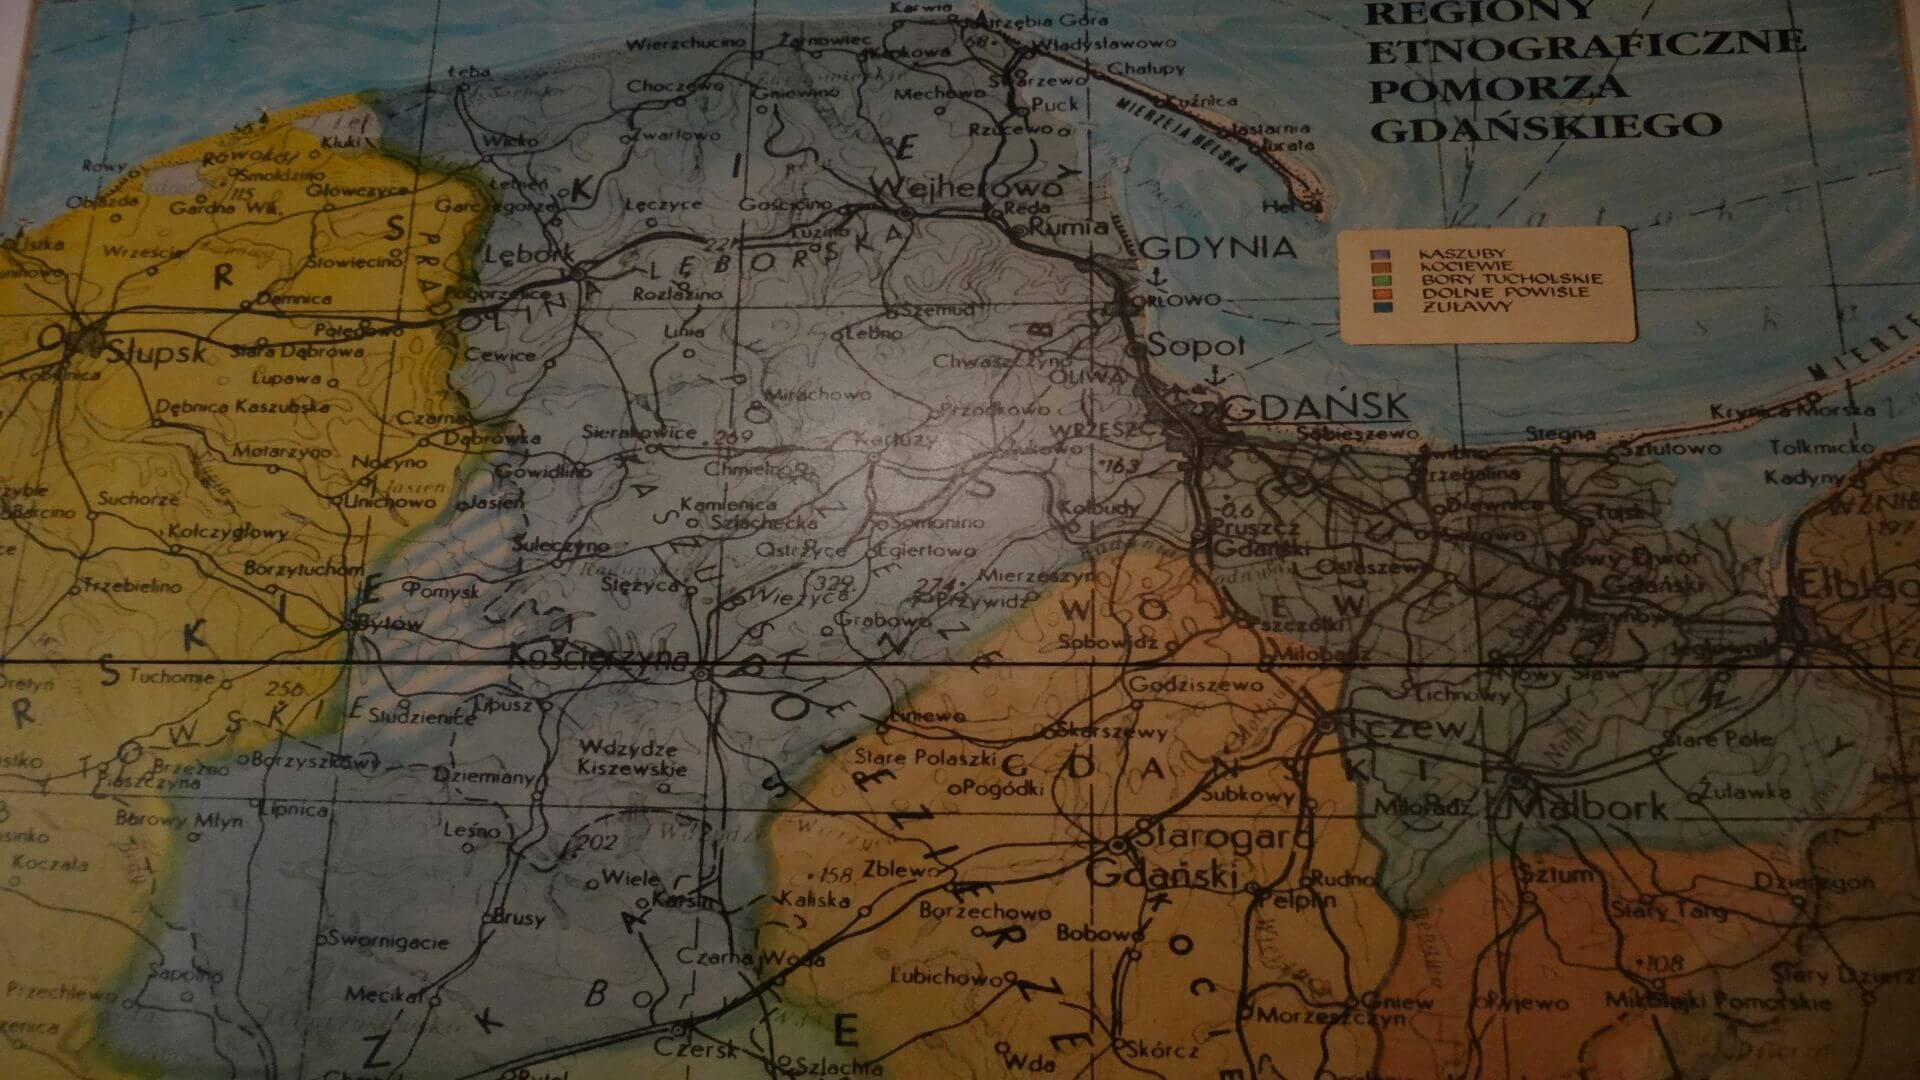 A map, shown at the entrance in the museum, depicts the borders between the regions in the Pomorska province of Poland. There still is discussing about the correct historical borders. Some say that Gdansk was the capital of the Kashubian region but this is disputed.